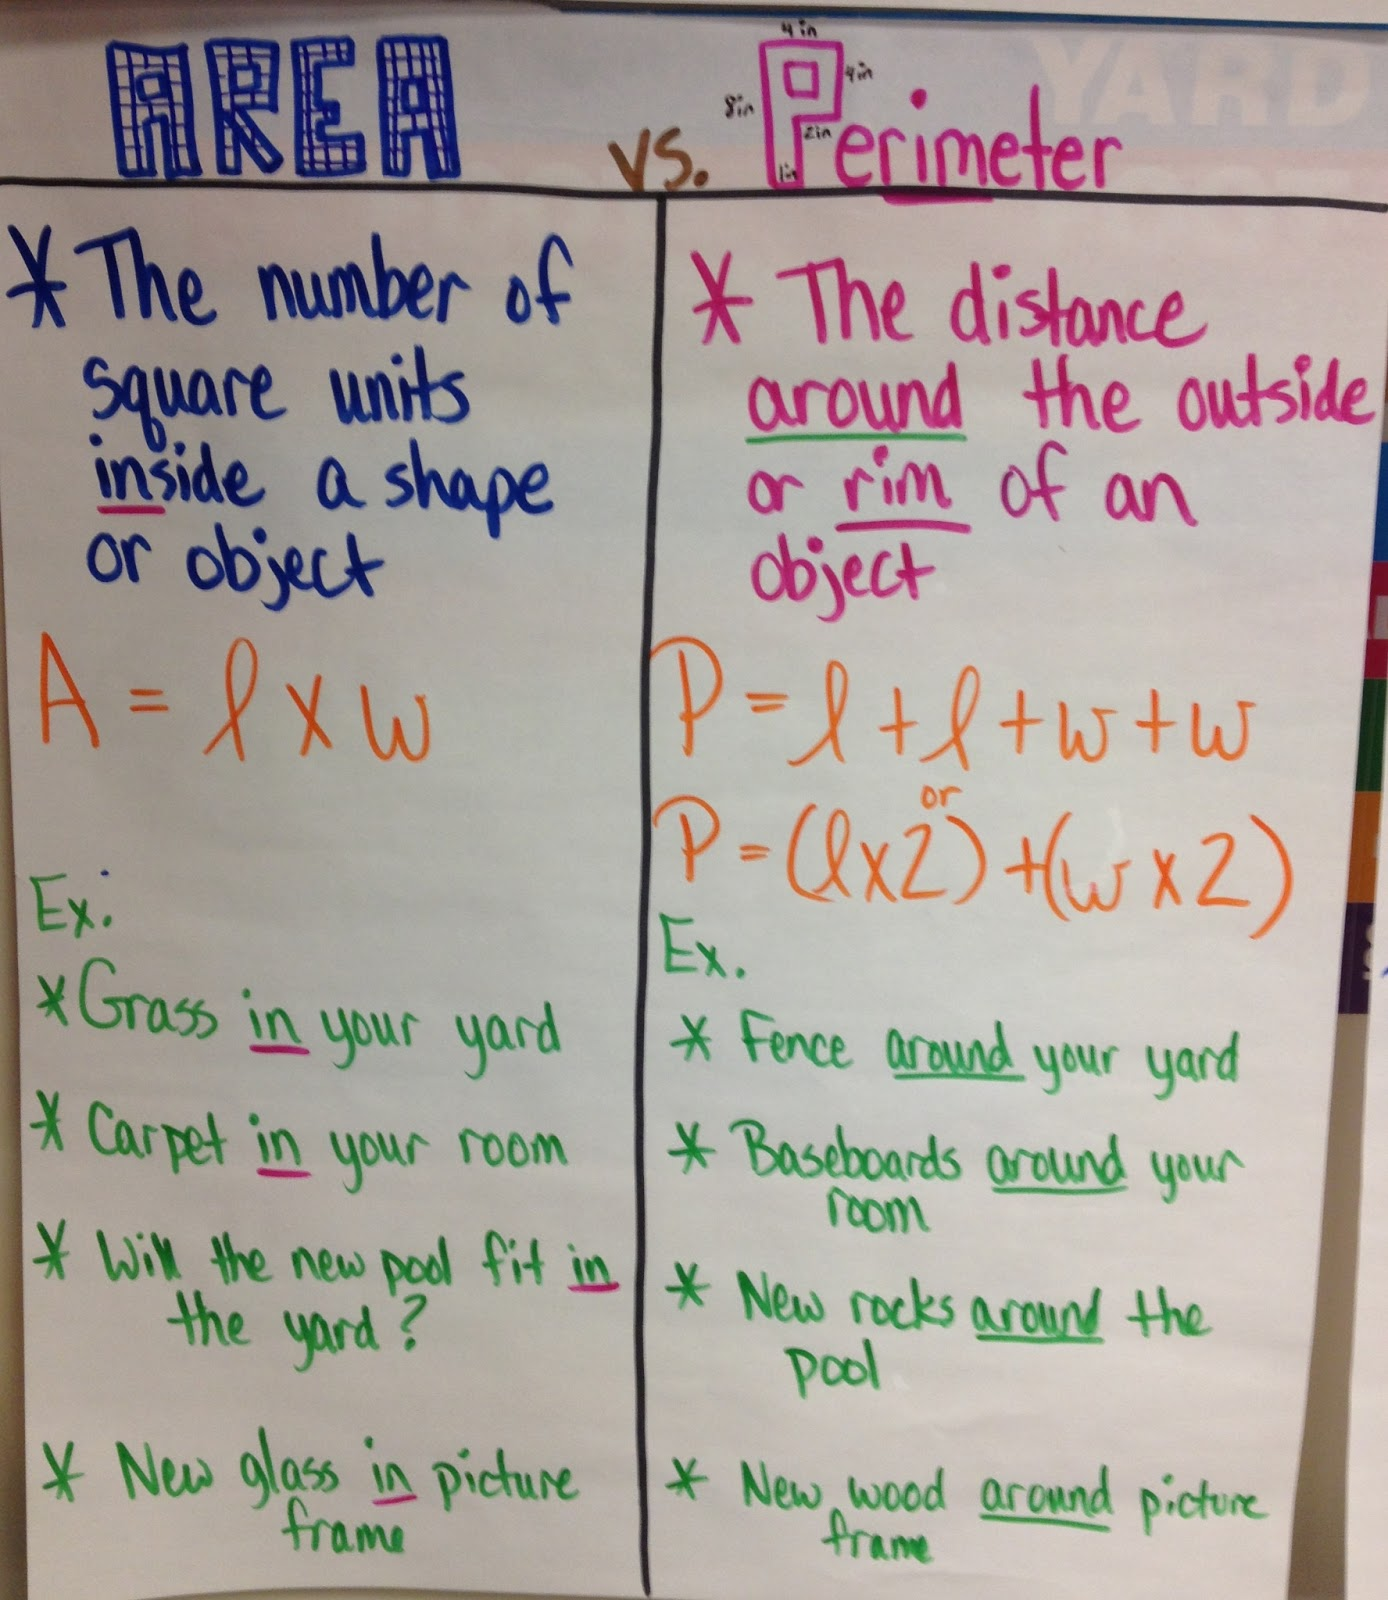 area and perimeter About area and perimeter word problems area and perimeter word problems are much useful to the students who would like to practice problems on area and perimeter of different shapes.